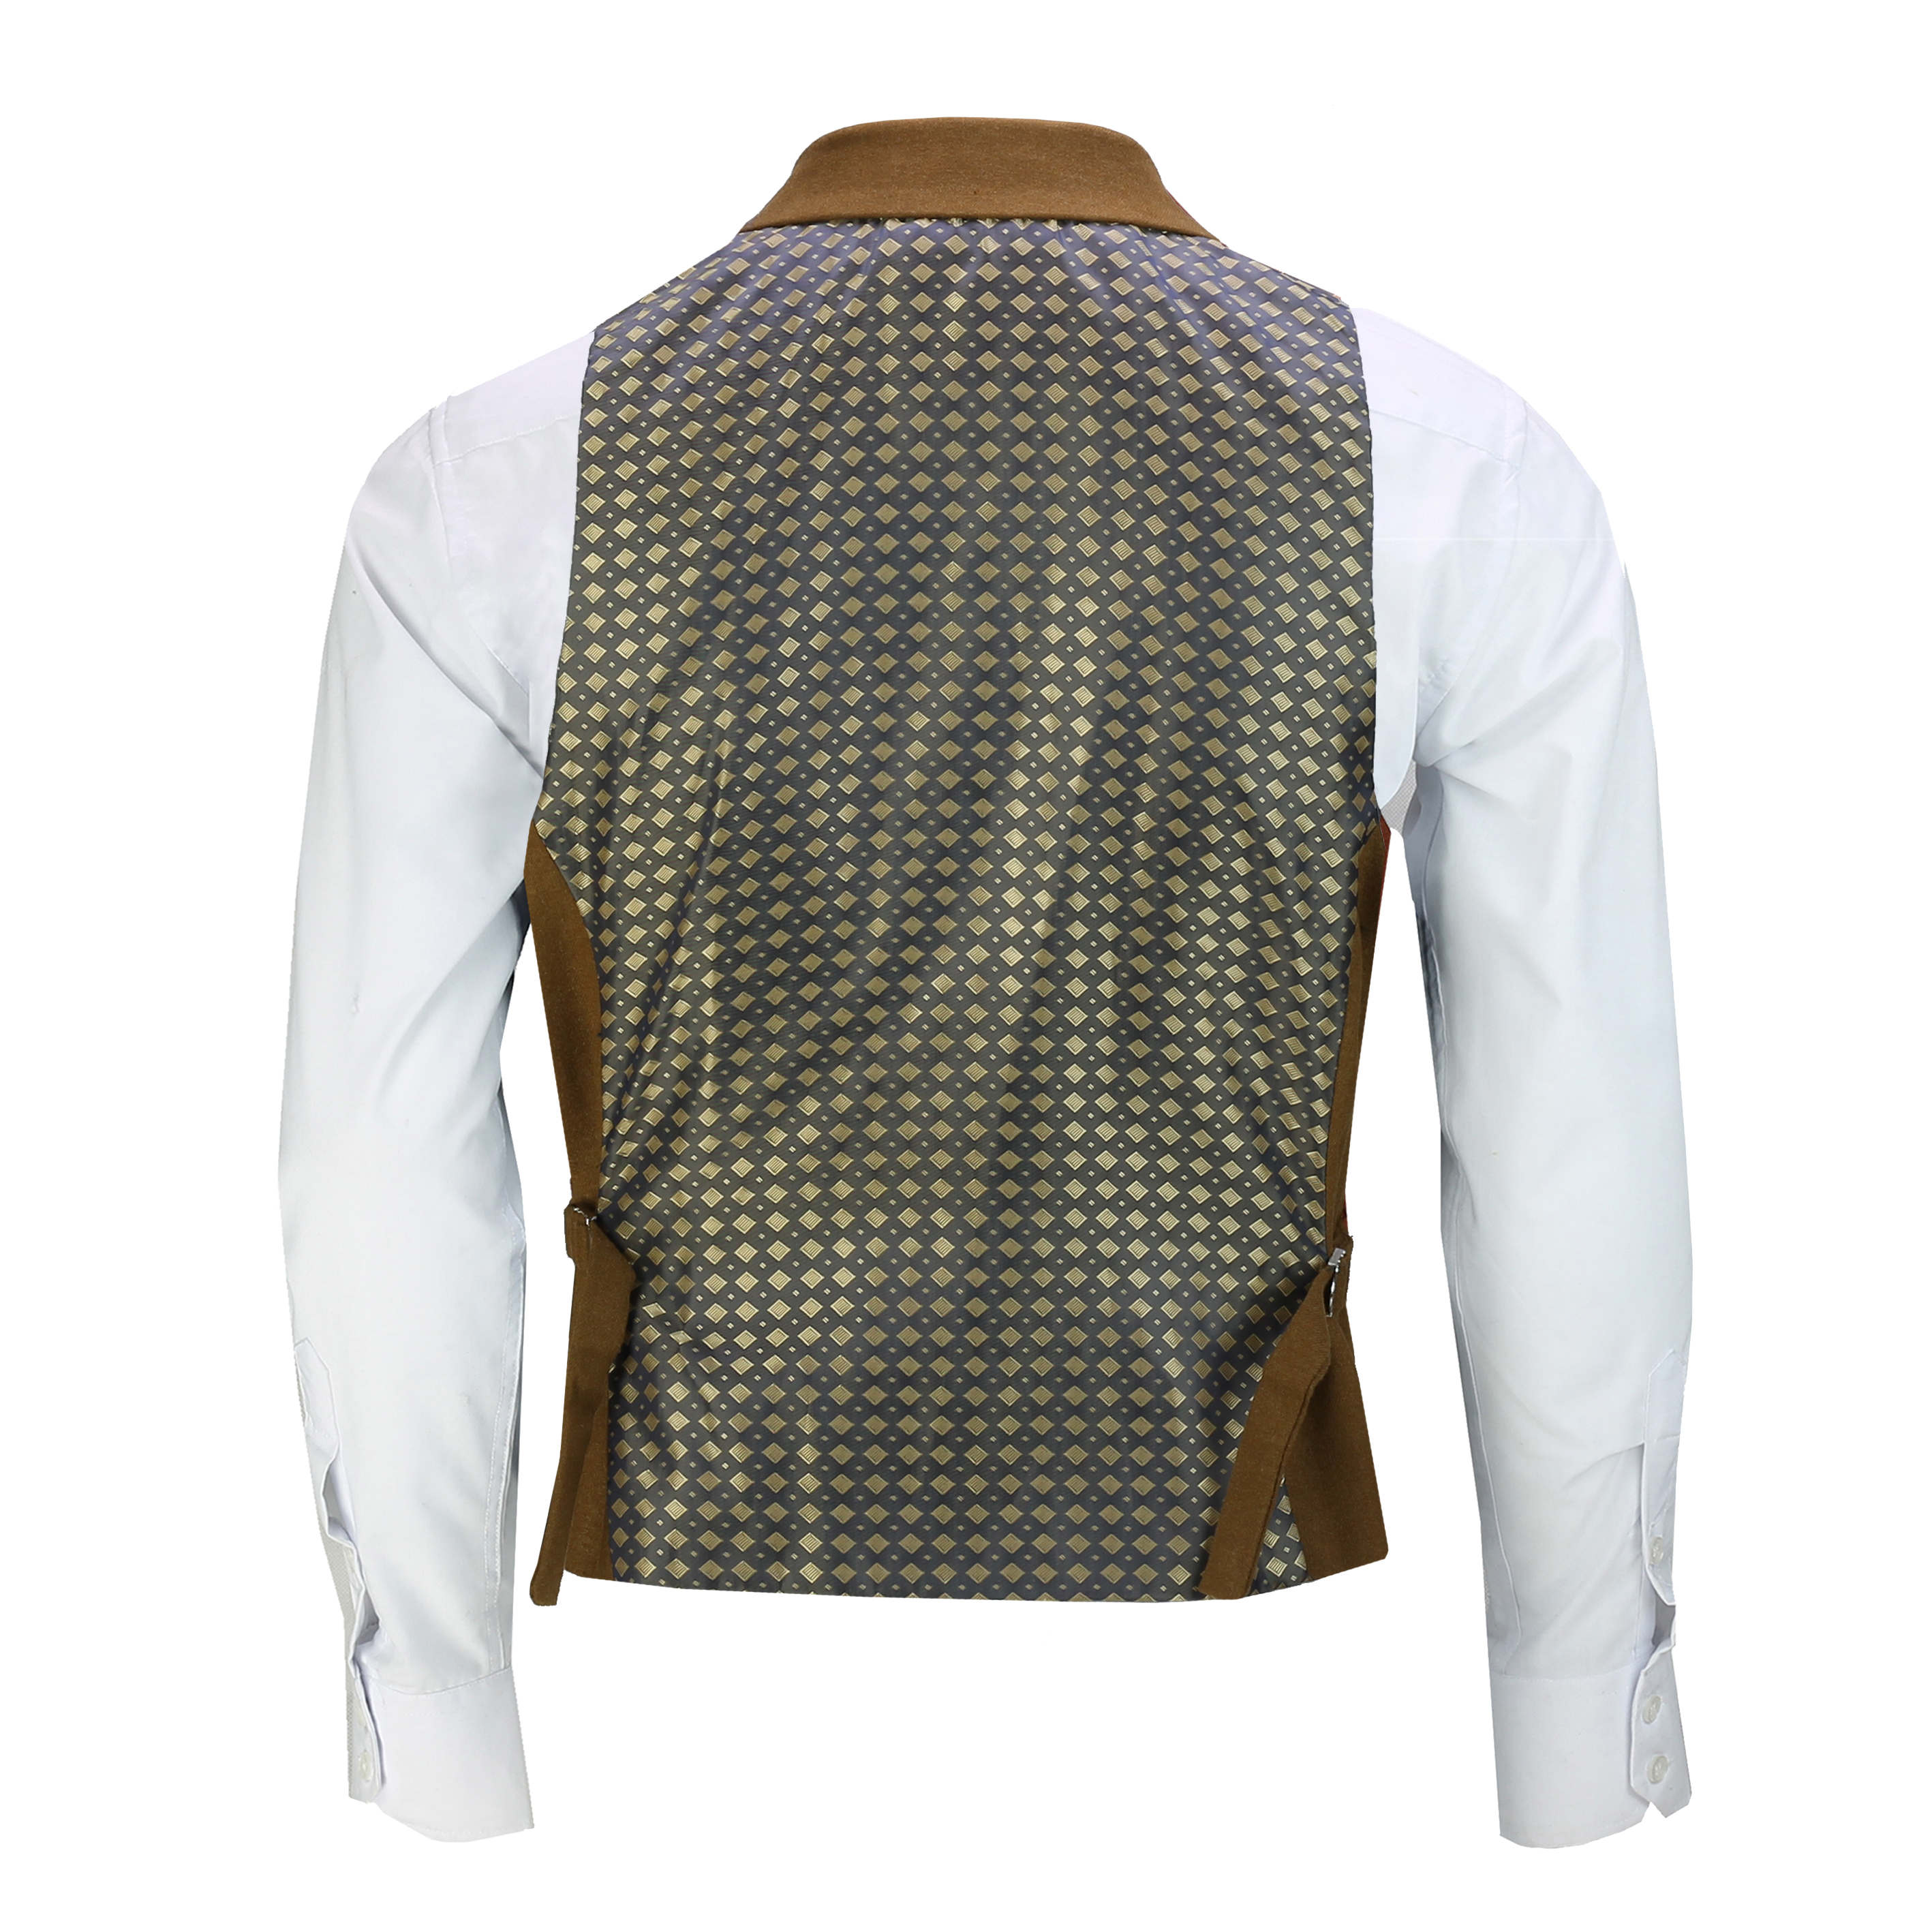 Mens-Classic-Collar-Waistcoat-Retro-Vintage-Style-Tailored-Fit-Smart-Formal-Vest thumbnail 25